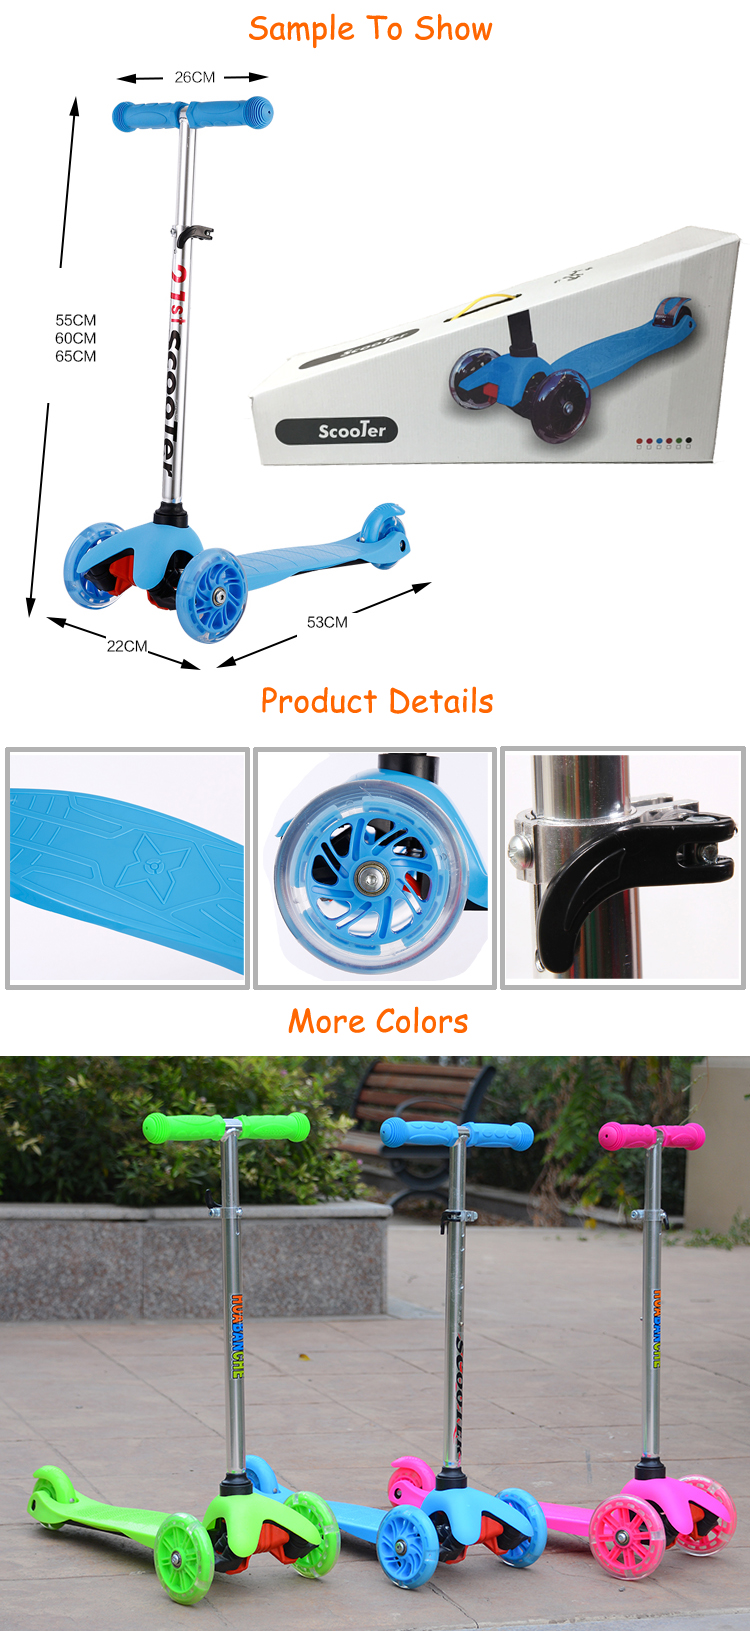 Buy online best cheap price rock riding flicker blue toys plegable baby scooter for boy 1 2 year old in india